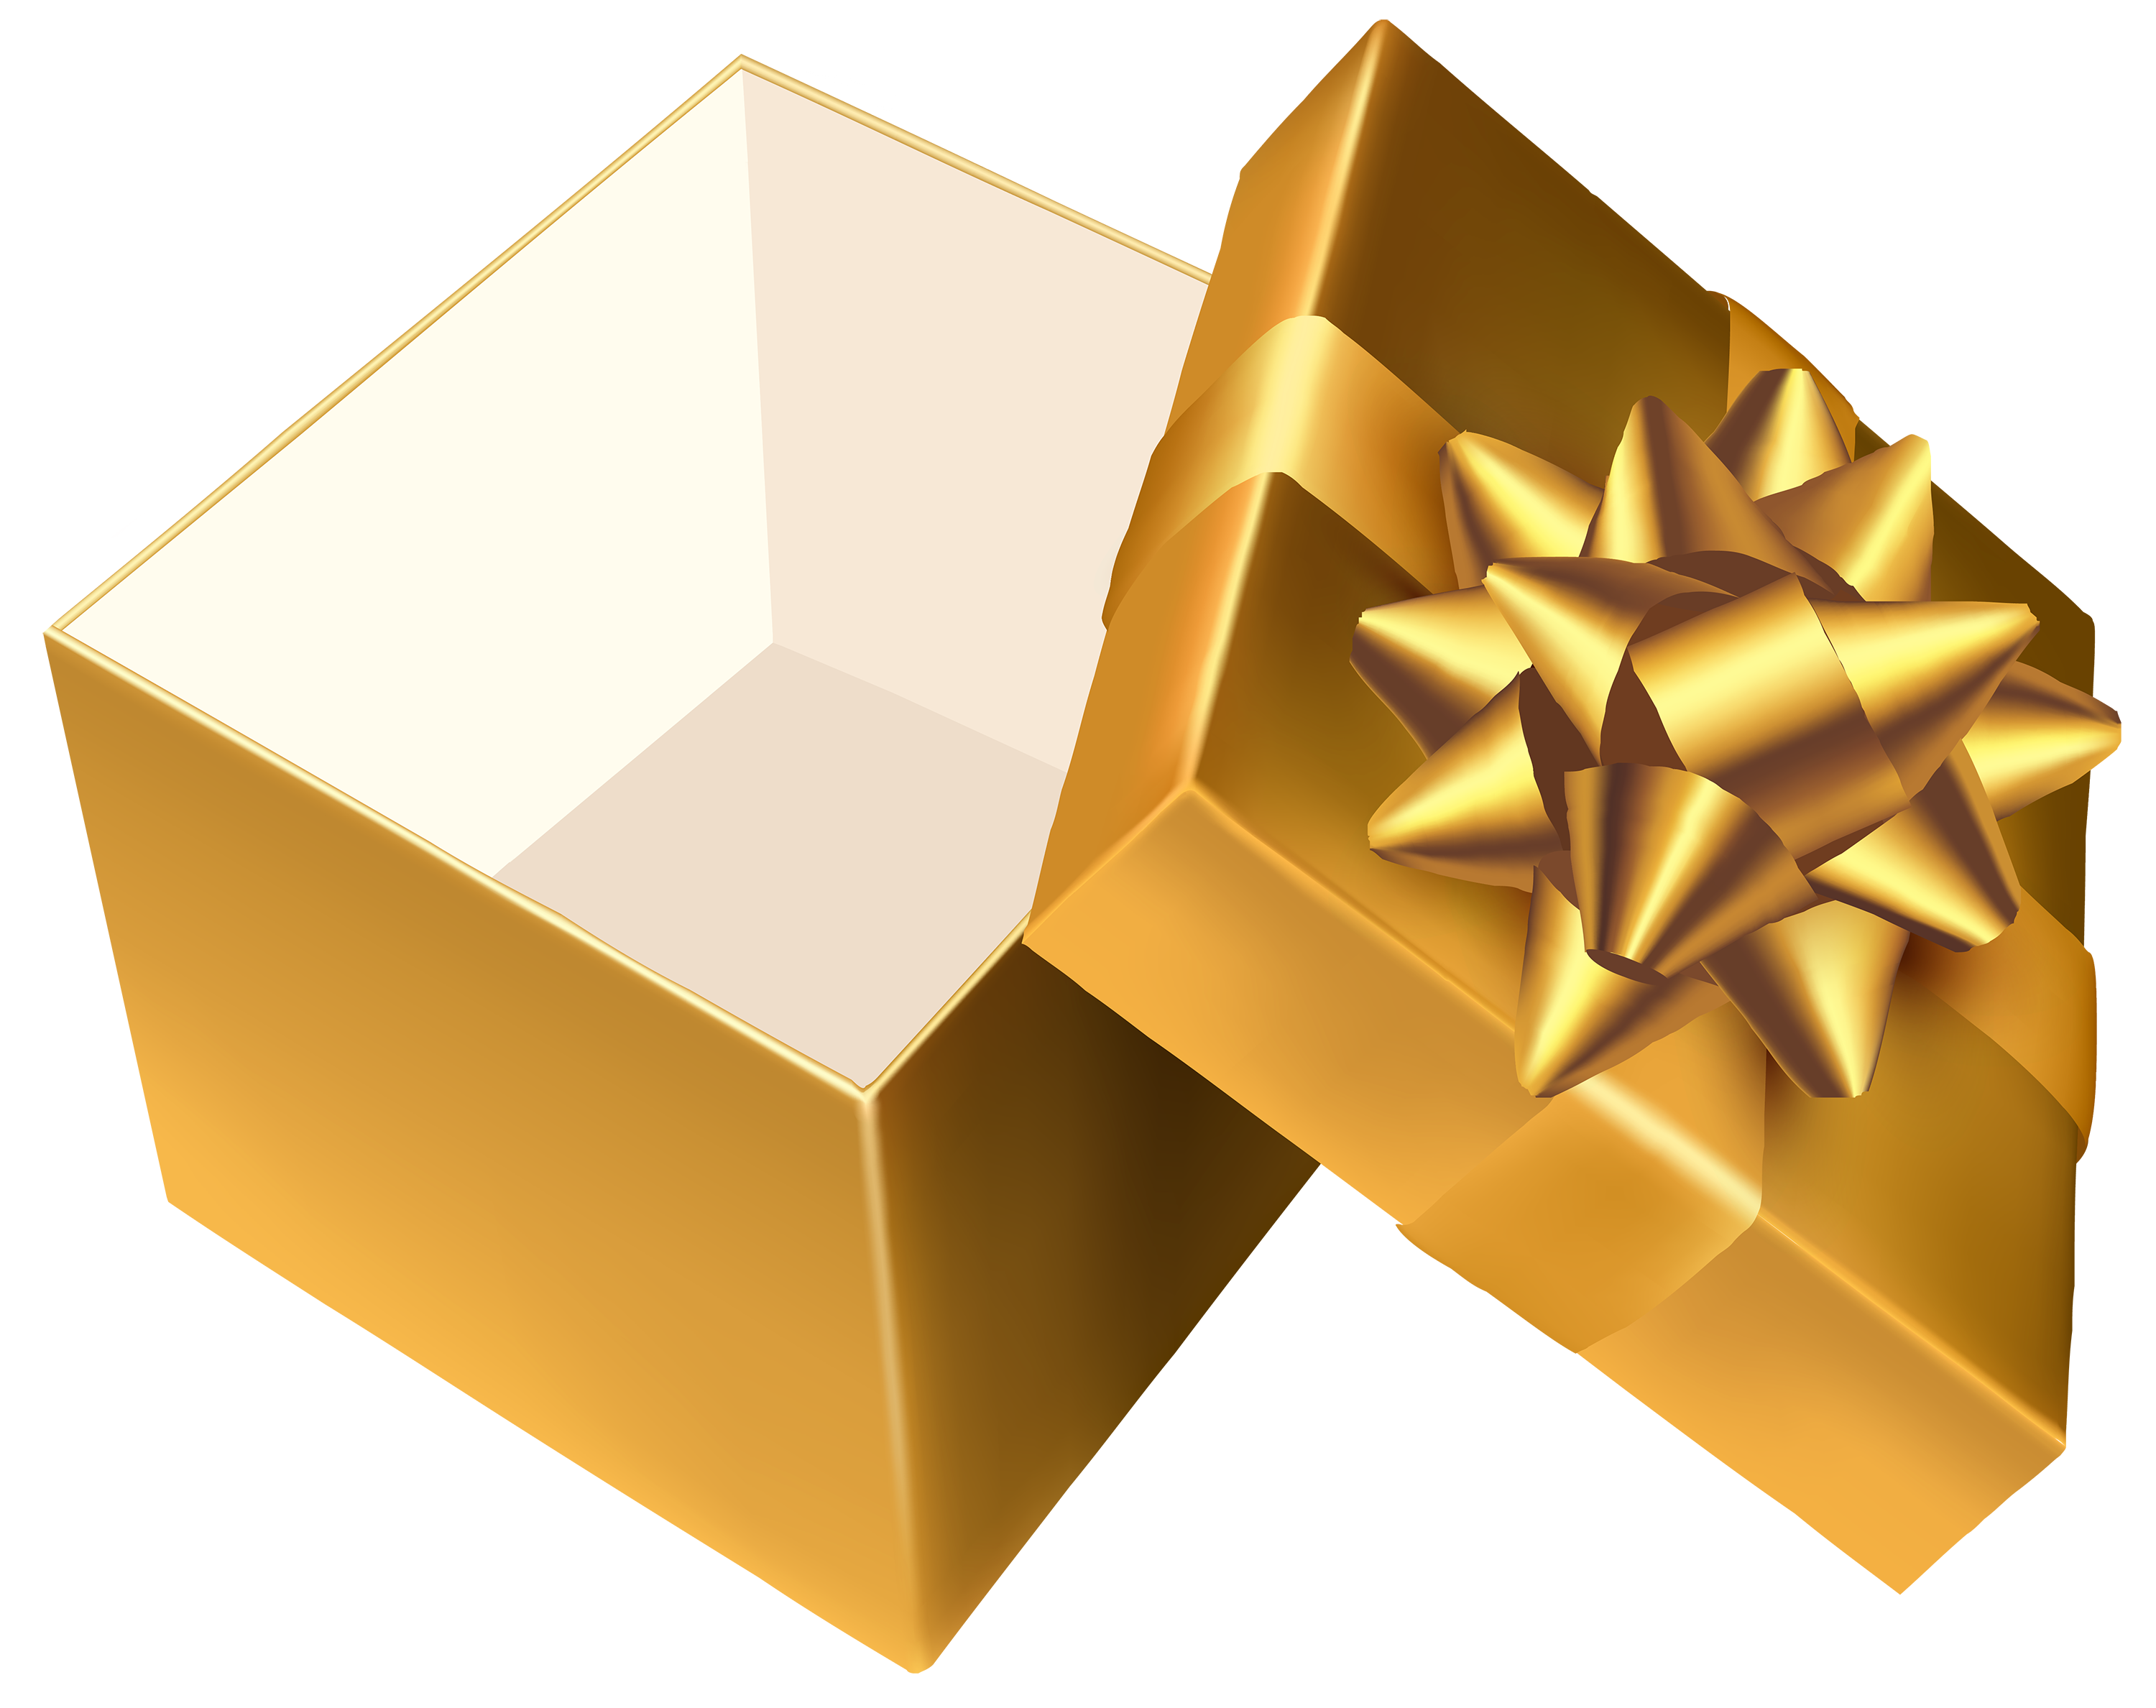 Gold house clipart graphic free stock Gold Open Gift PNG Clipart - Best WEB Clipart graphic free stock